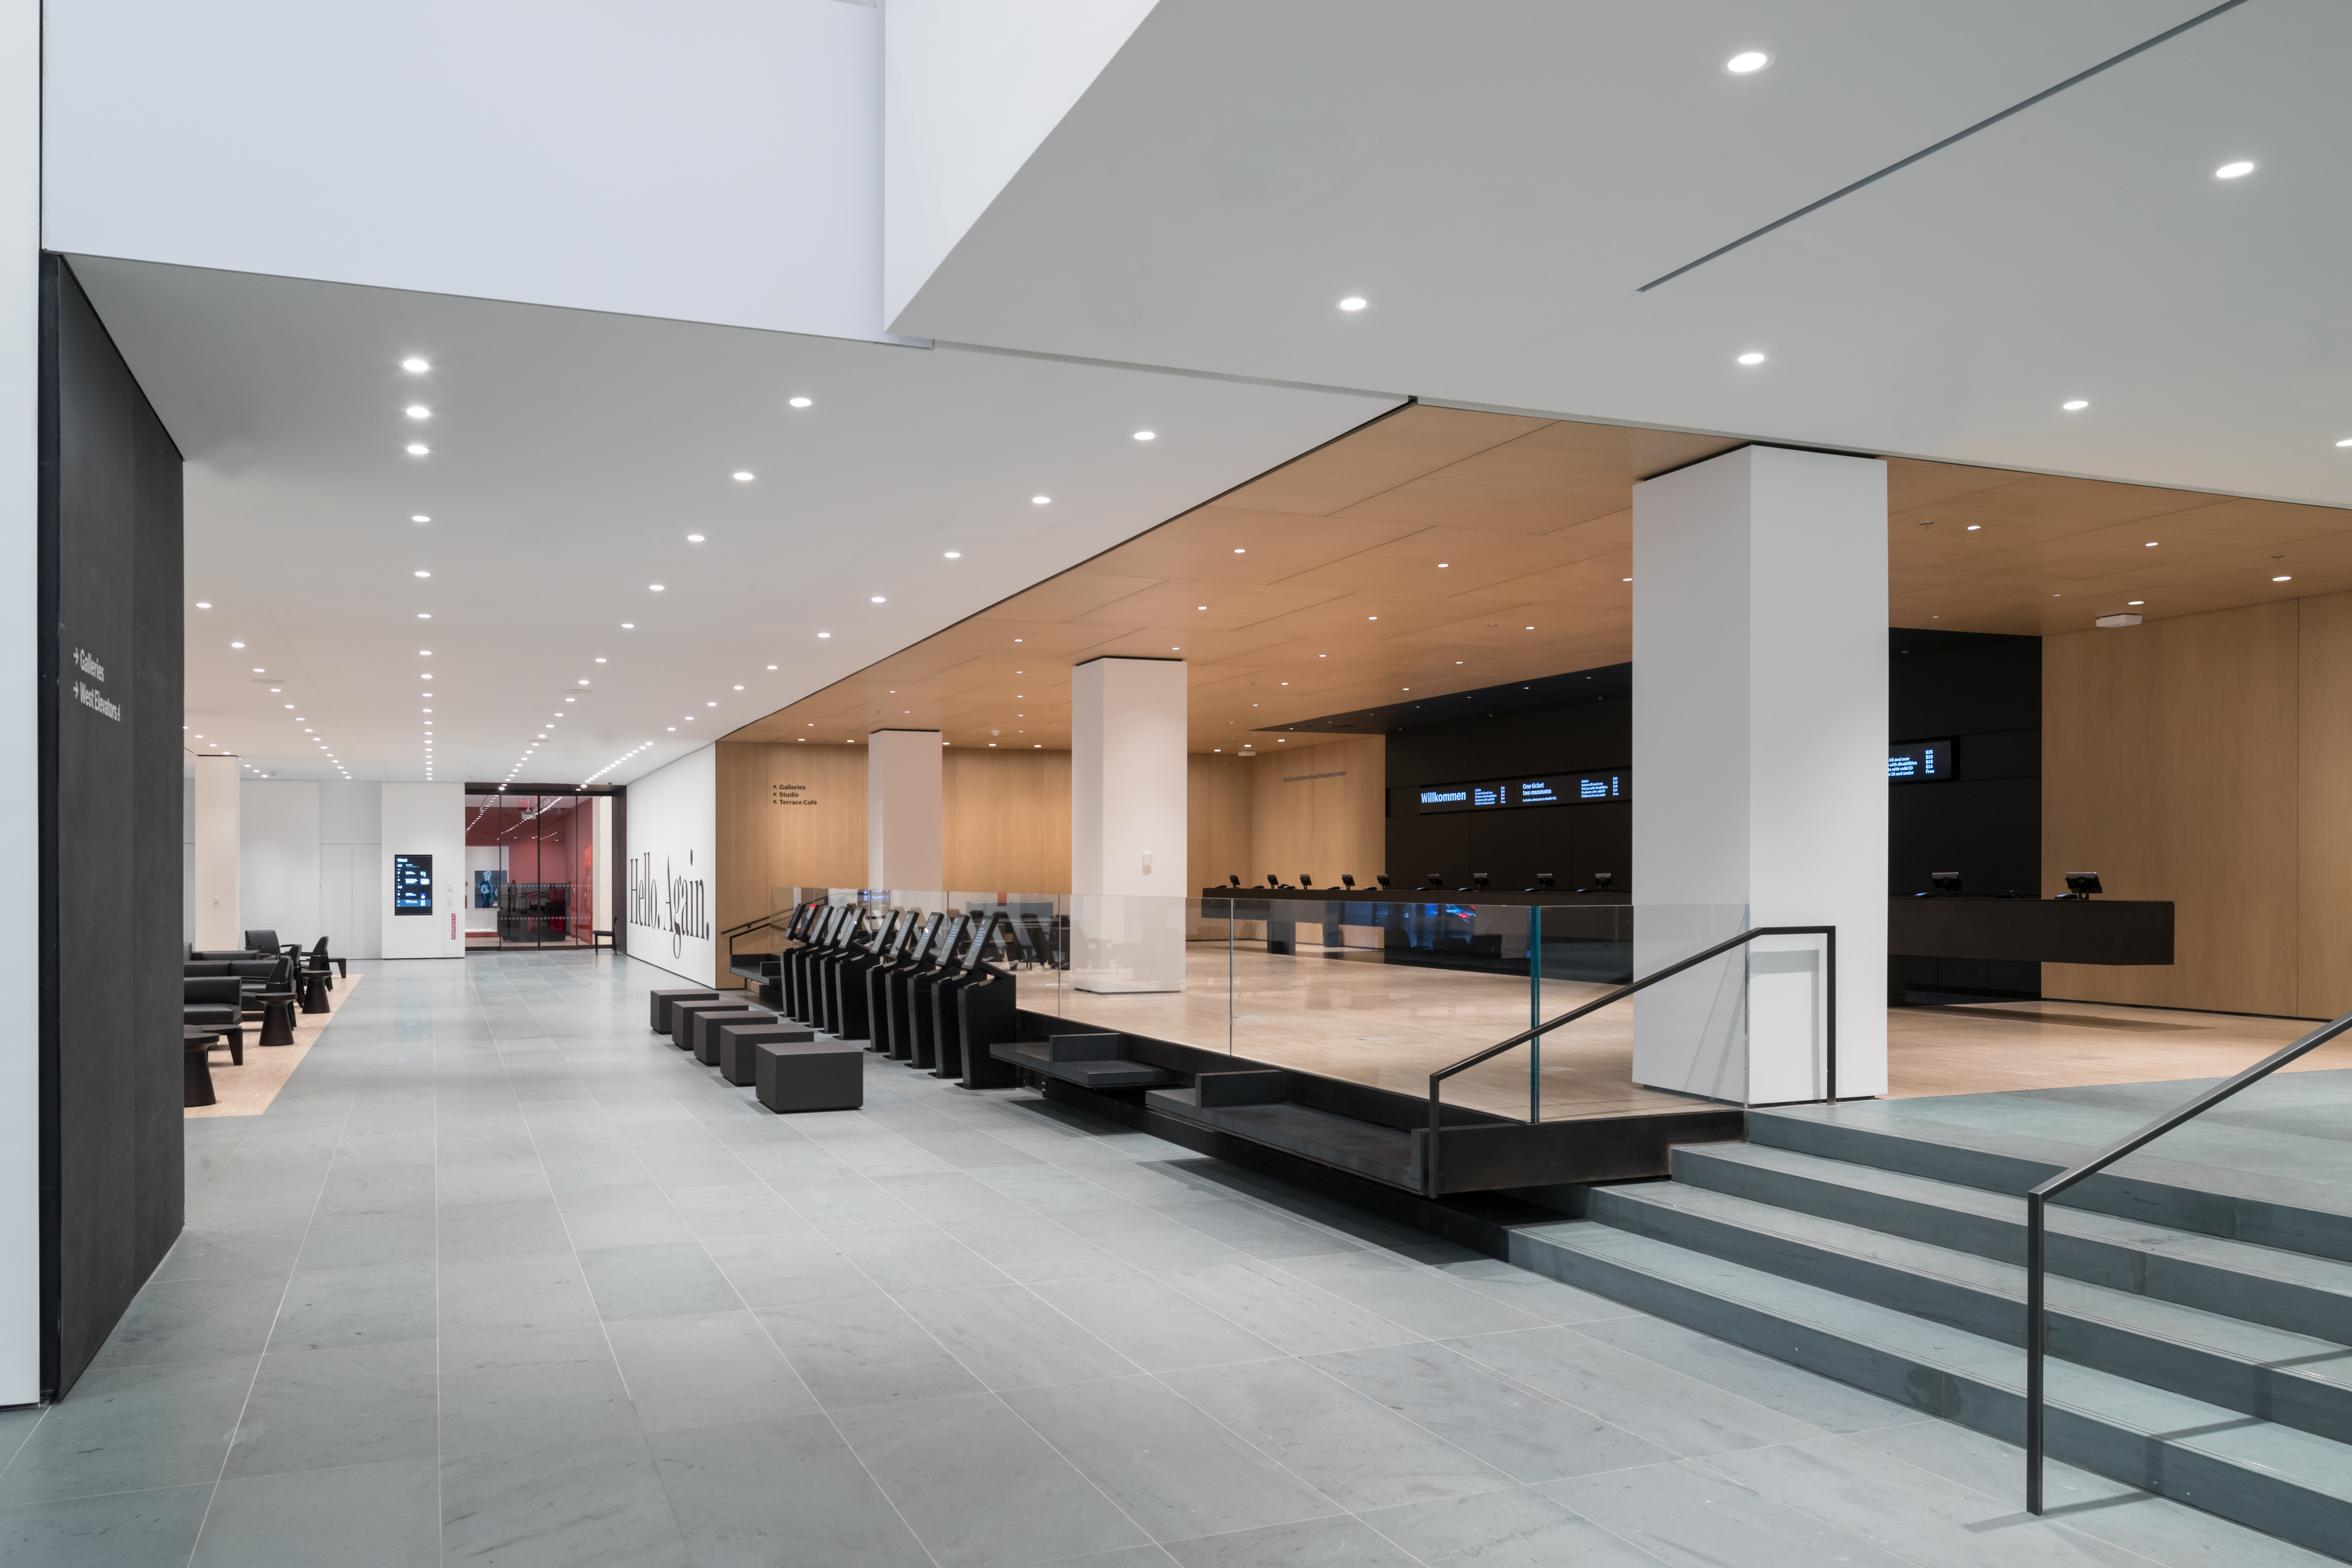 <p>Fase 2. Interior view of The Museum of Modern Art Lobby, West Connector Beeld Iwan Baan. Courtesey of MoMa</p>